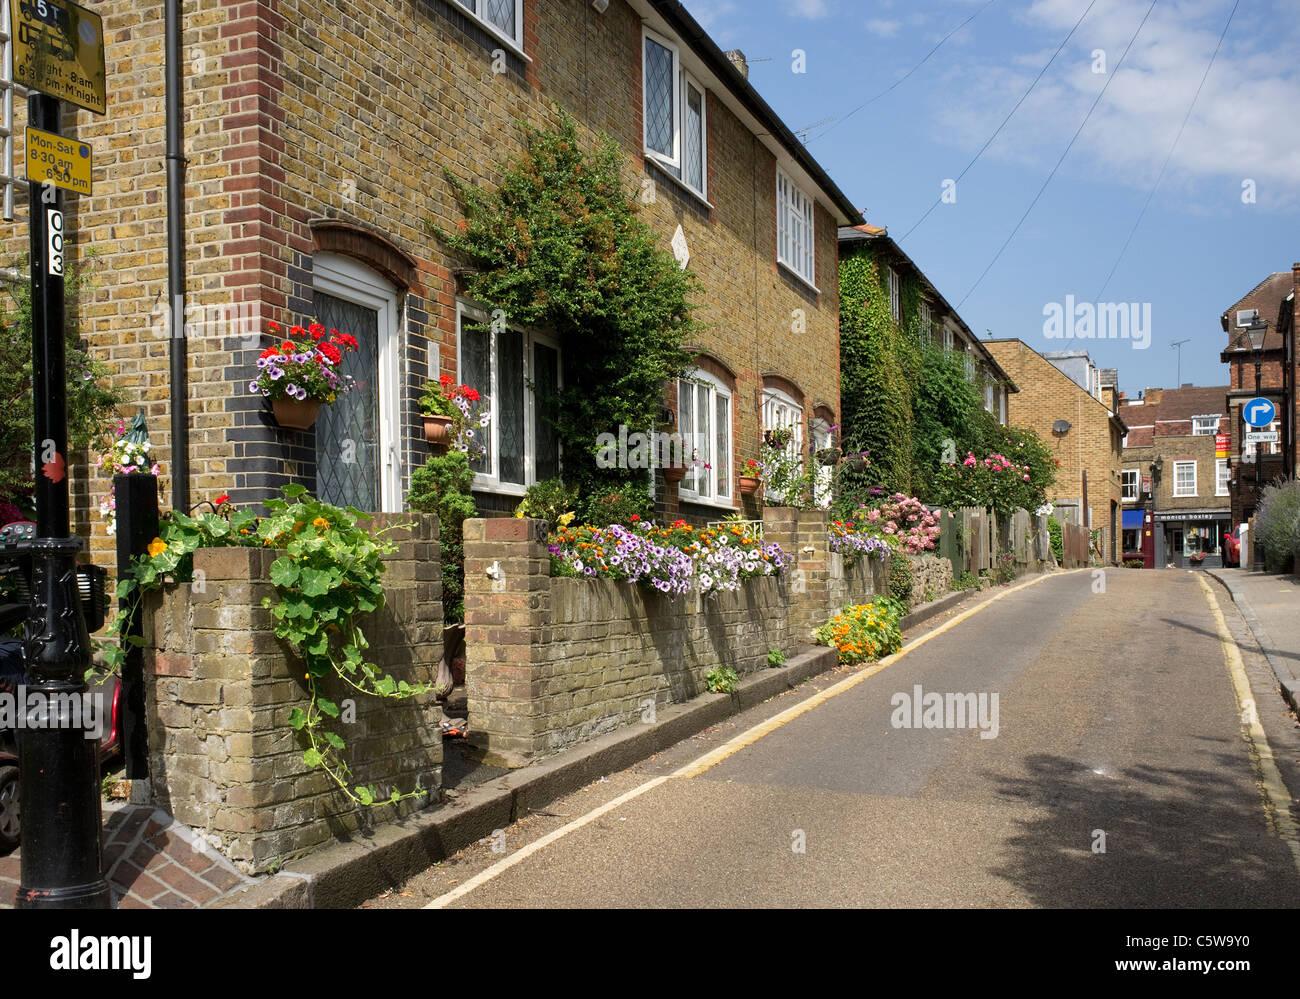 Cottages in Bell Lane, Twickenham, London Borough of Richmond upon Thames -1 - Stock Image